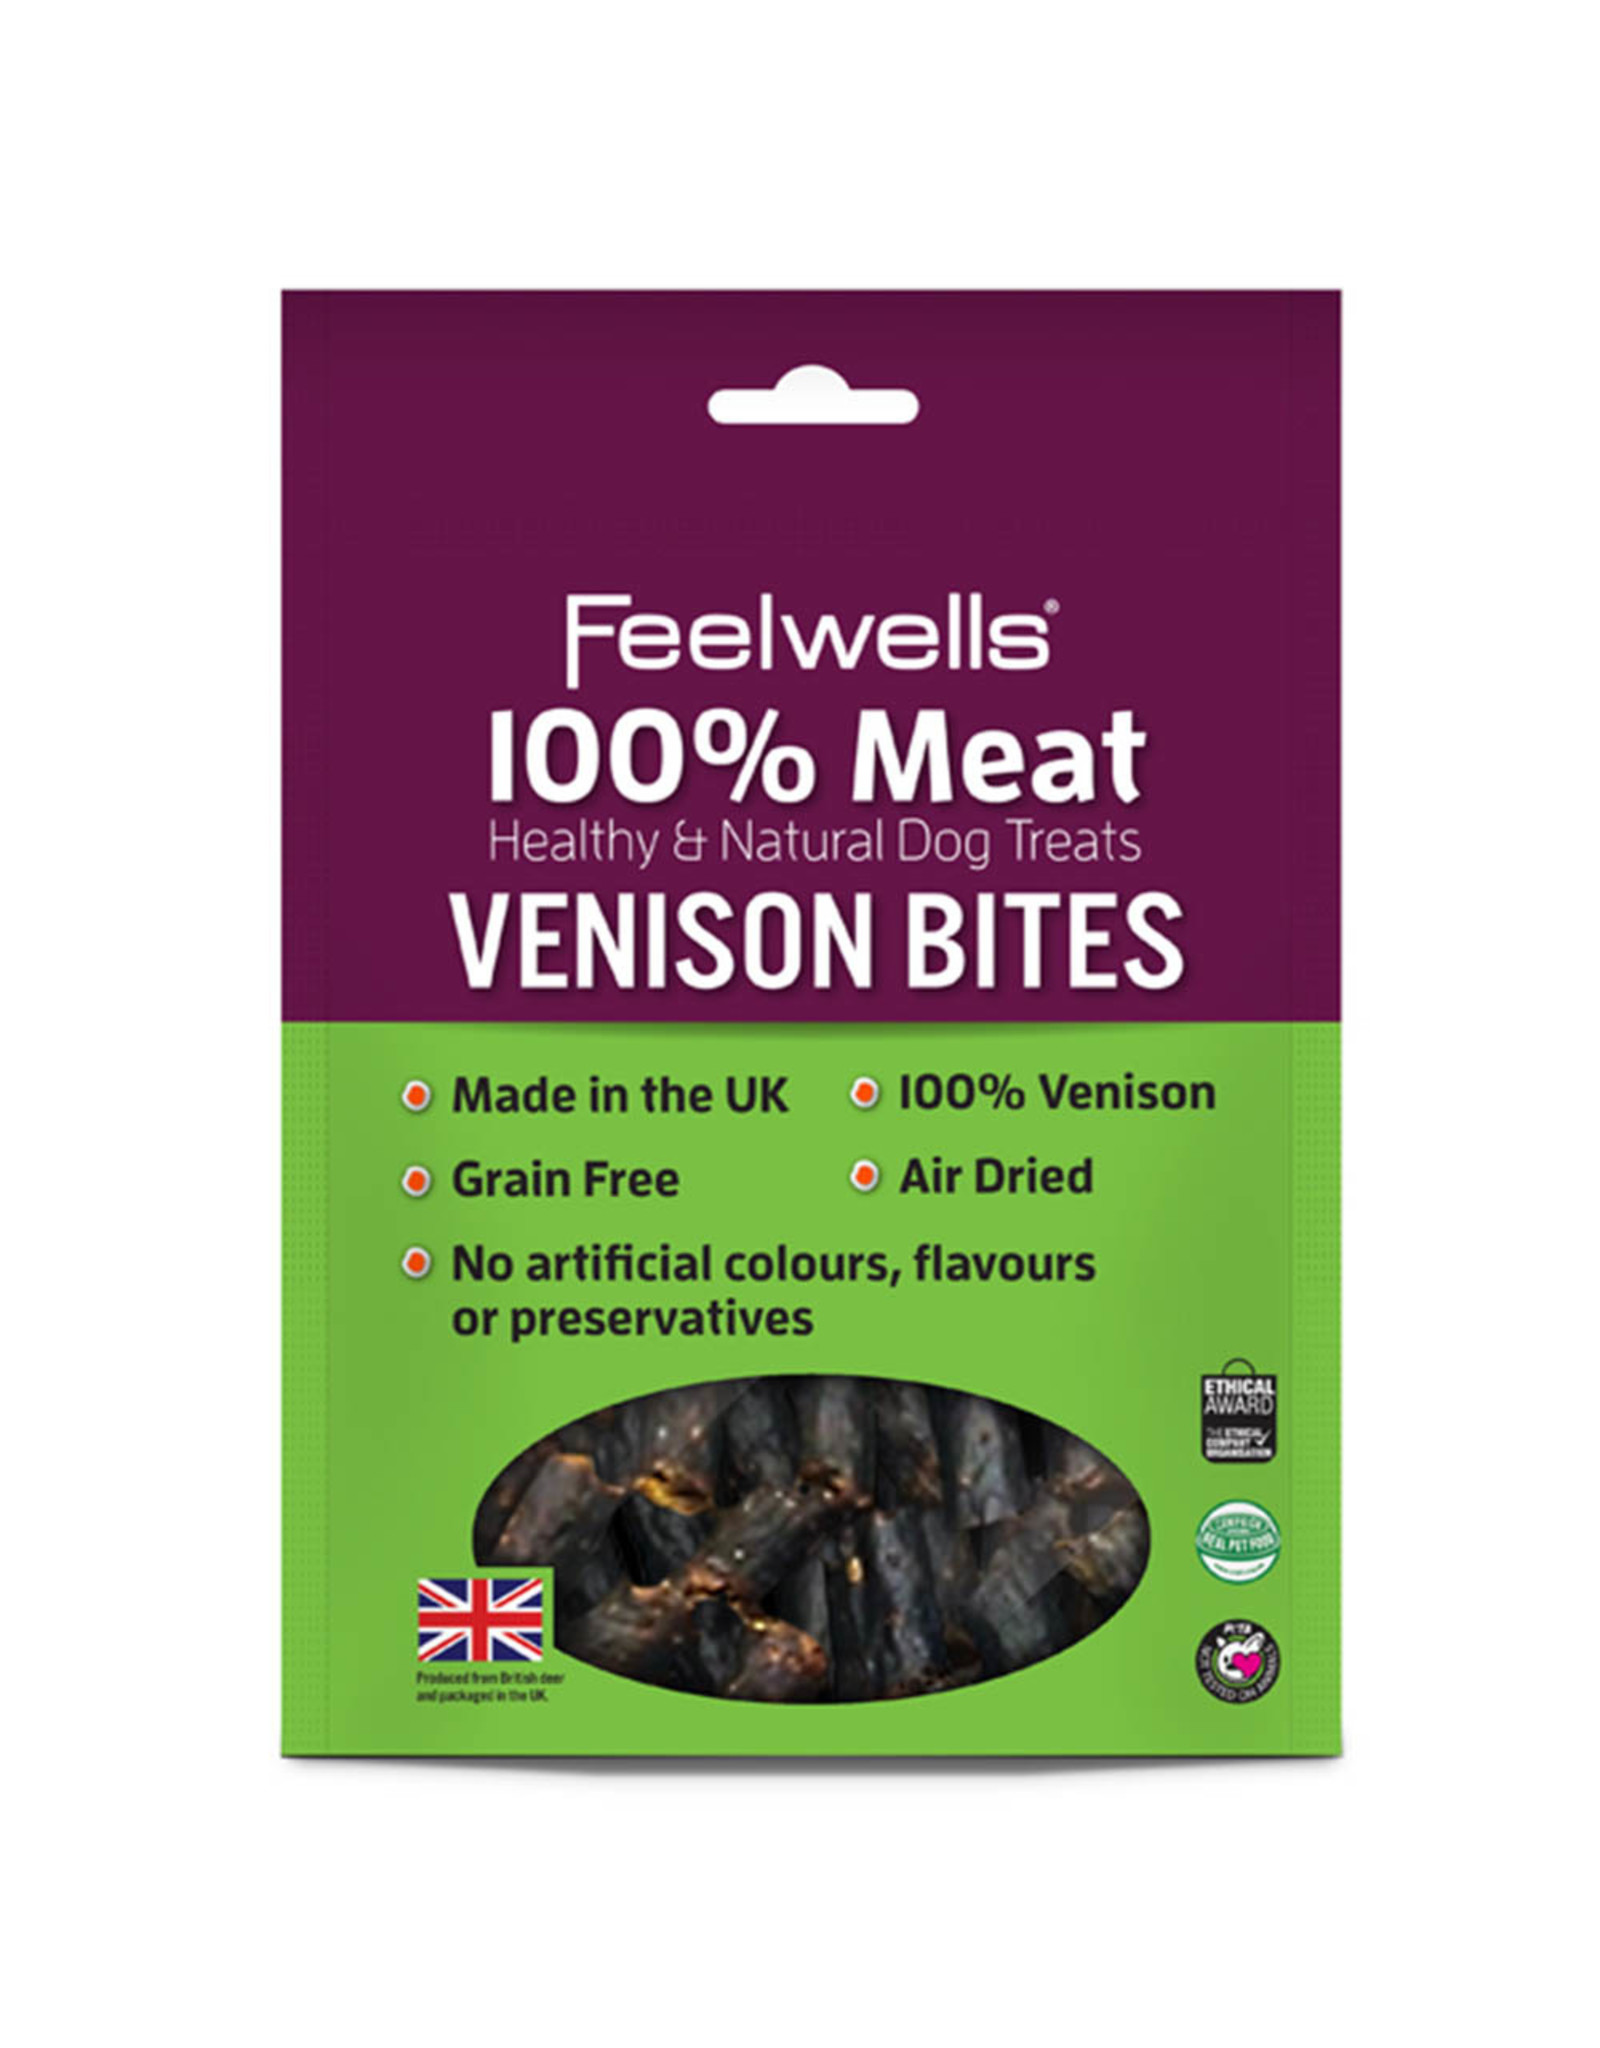 Feelwells 100% Meat Healthy & Natural Dog Treats Venison Bites, 100g